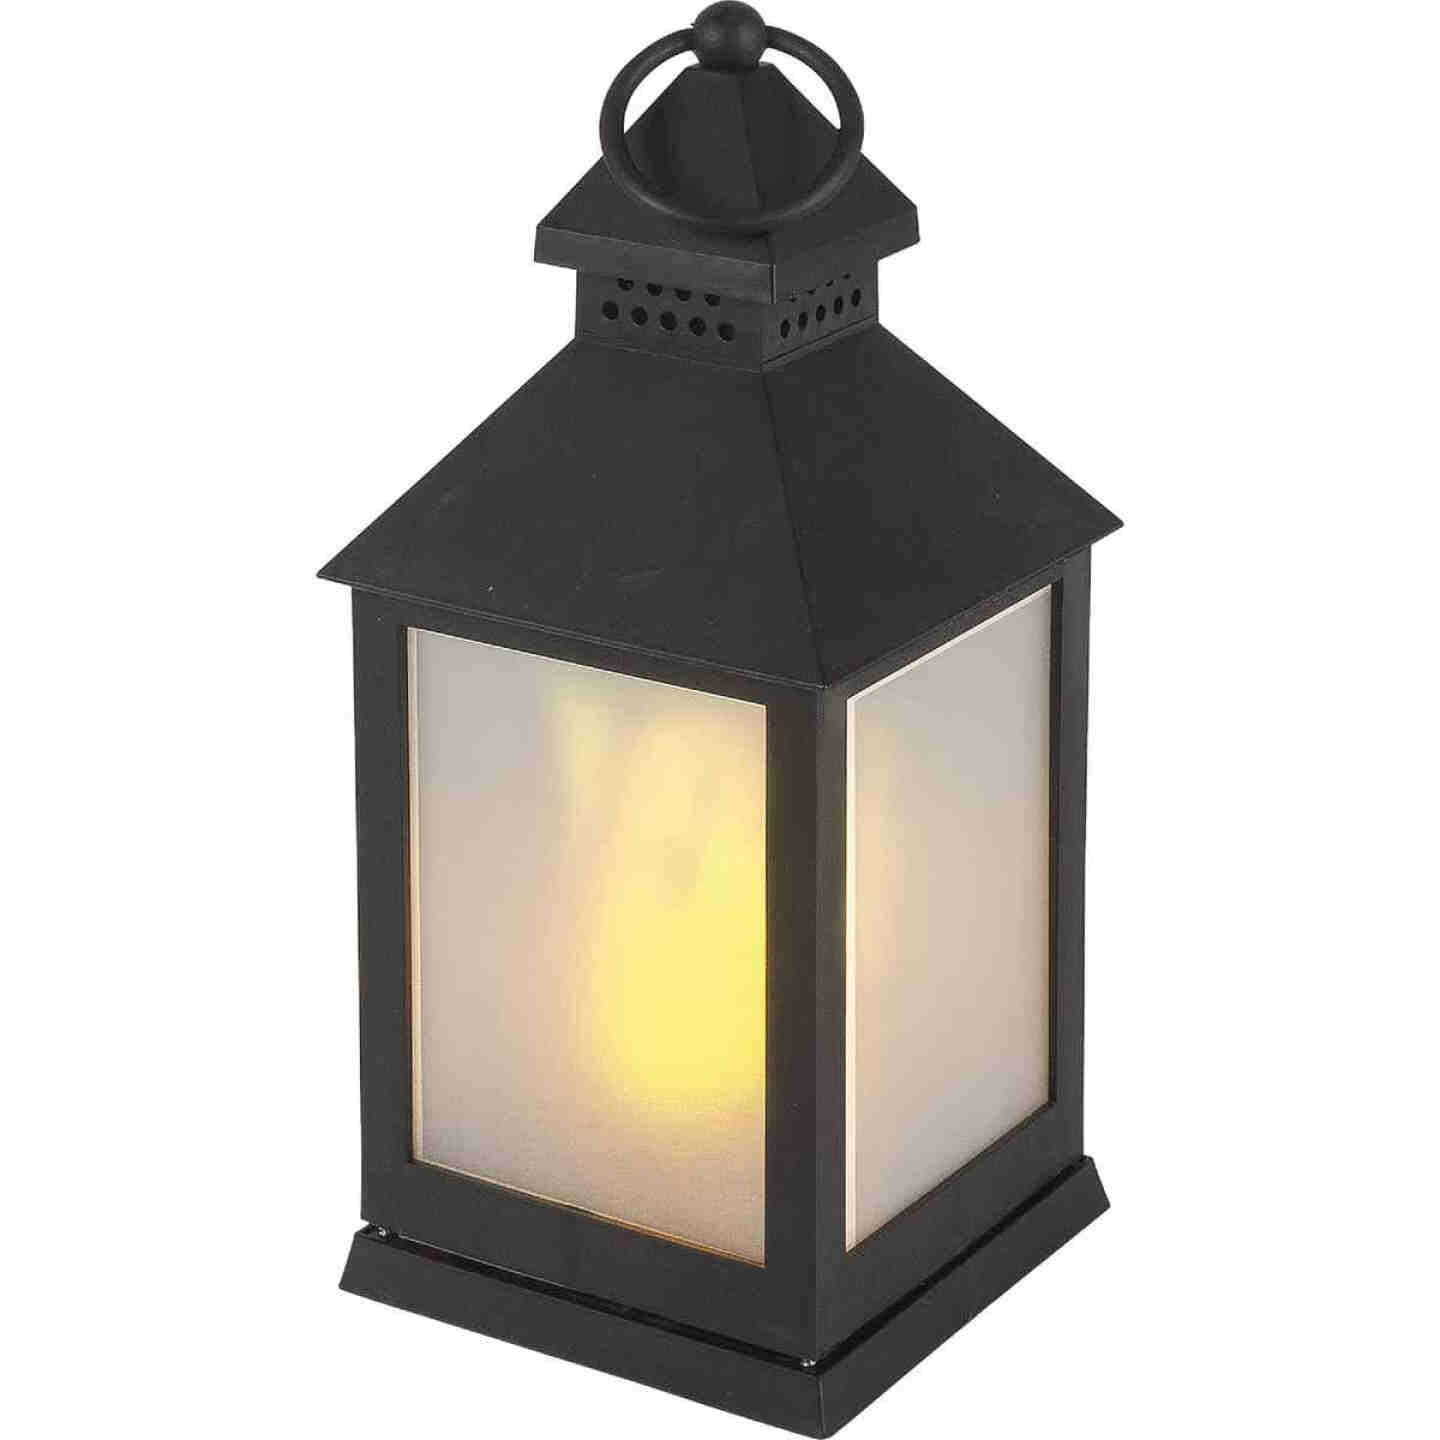 Everlasting Glow 4.13 In W. x 9.25 In. H. x 4.13 In. L. Black Square Patio Lantern Image 1